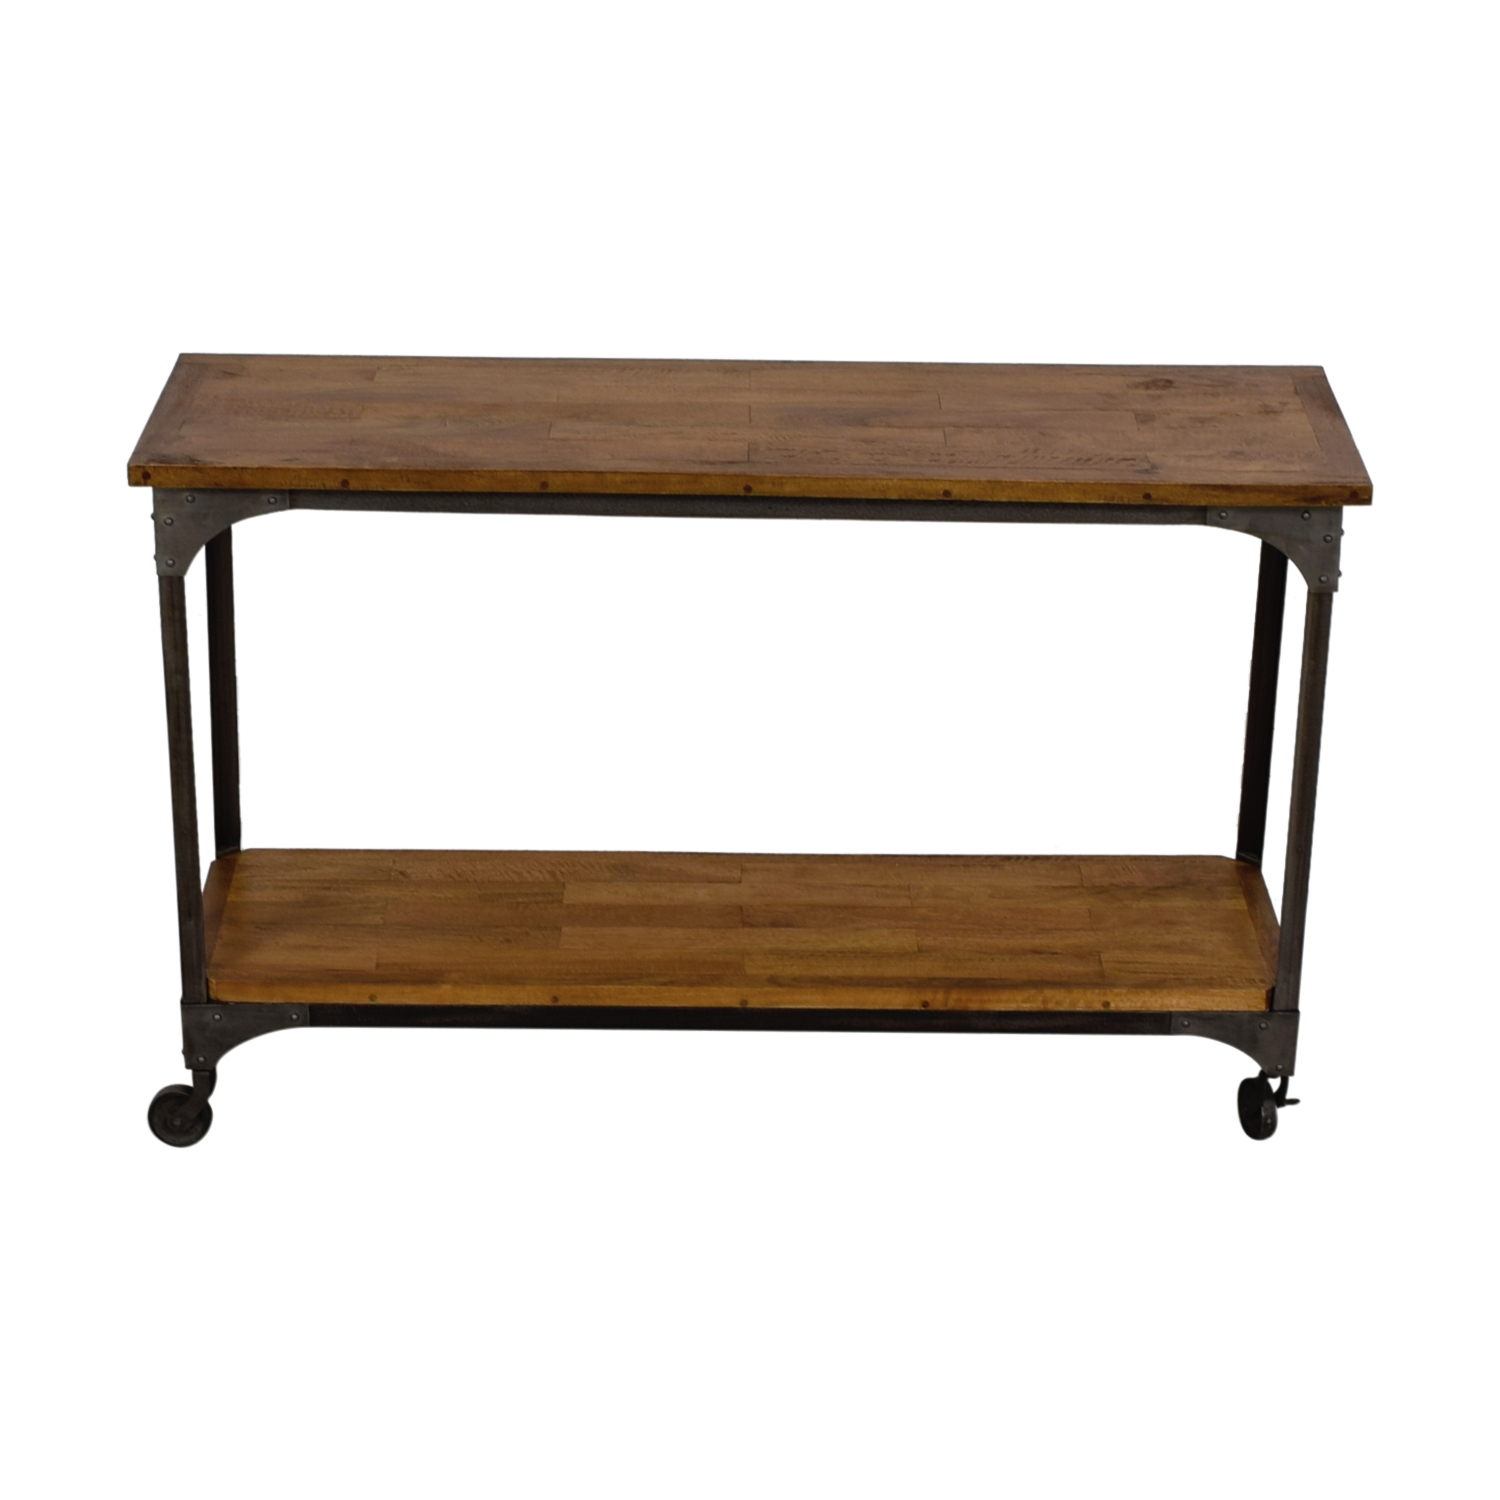 shop World Market World Market Aiden Wood and Metal Console Table online